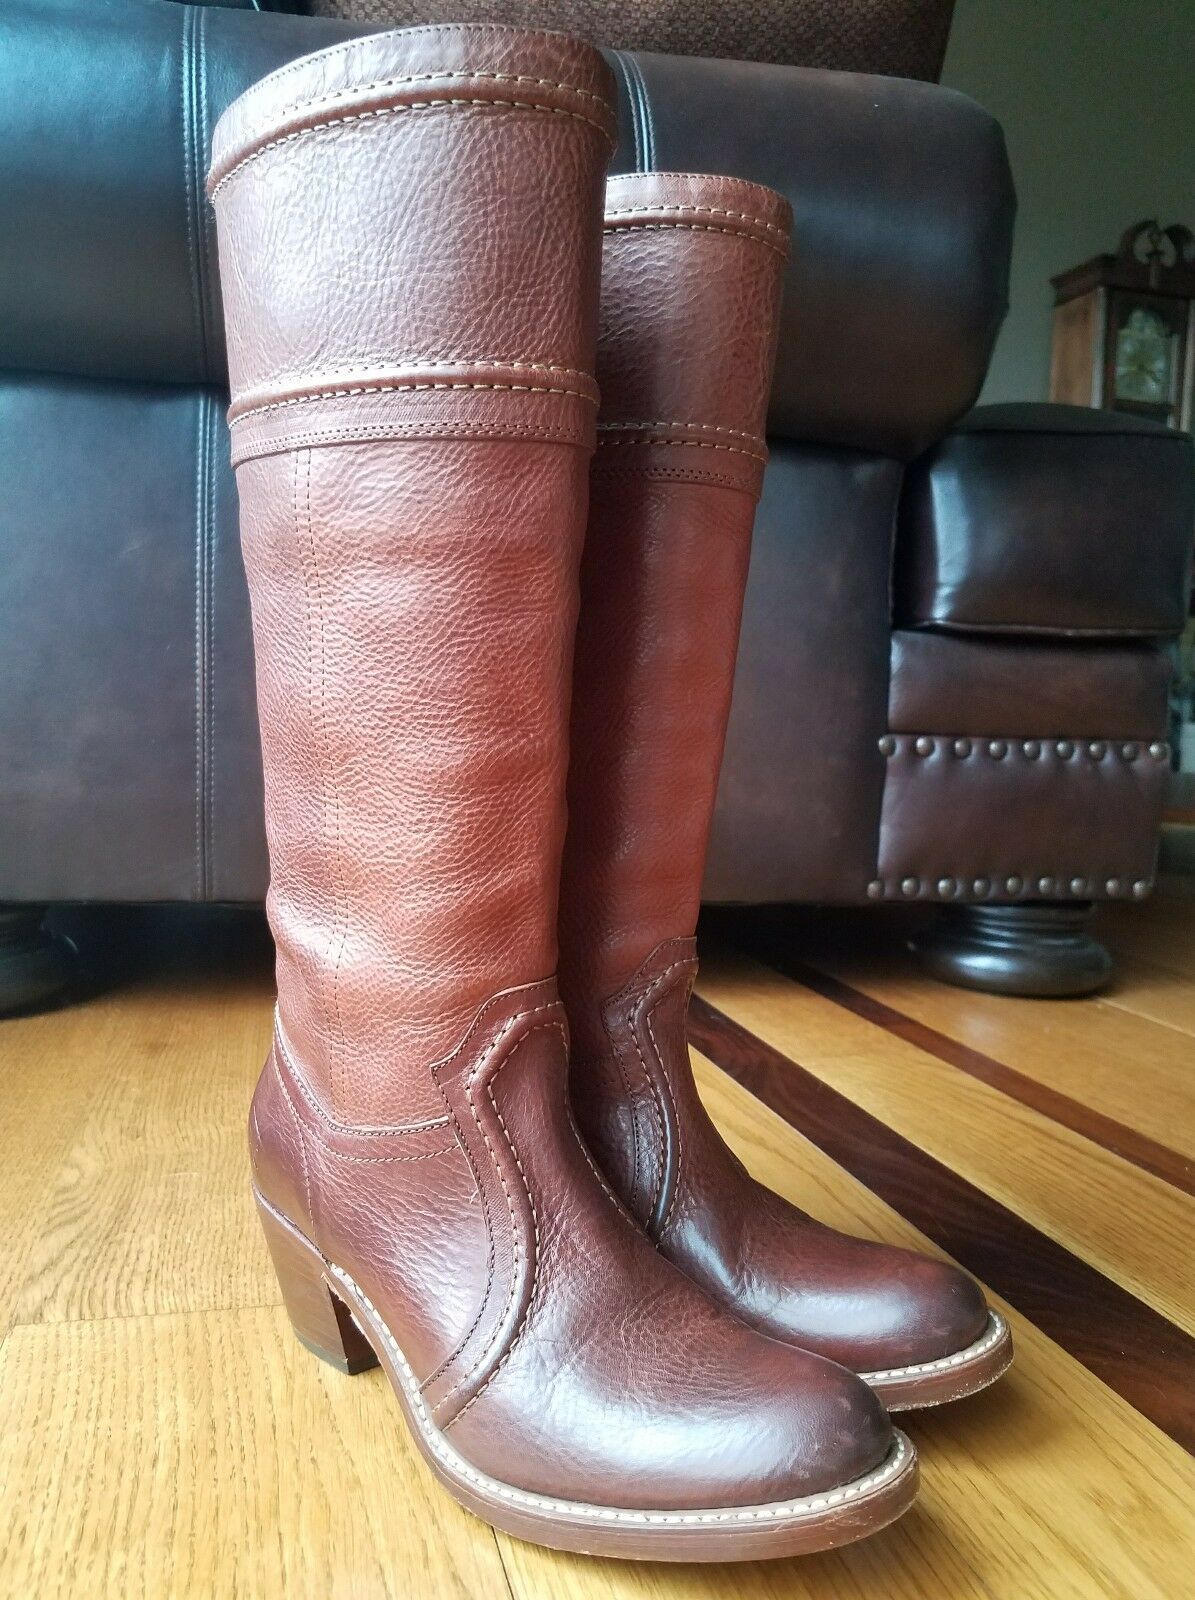 FRYE Woman's Riding Riding Riding Boots Brown Leather Cowboy Western Pull On Knee High Size 7B a76dab